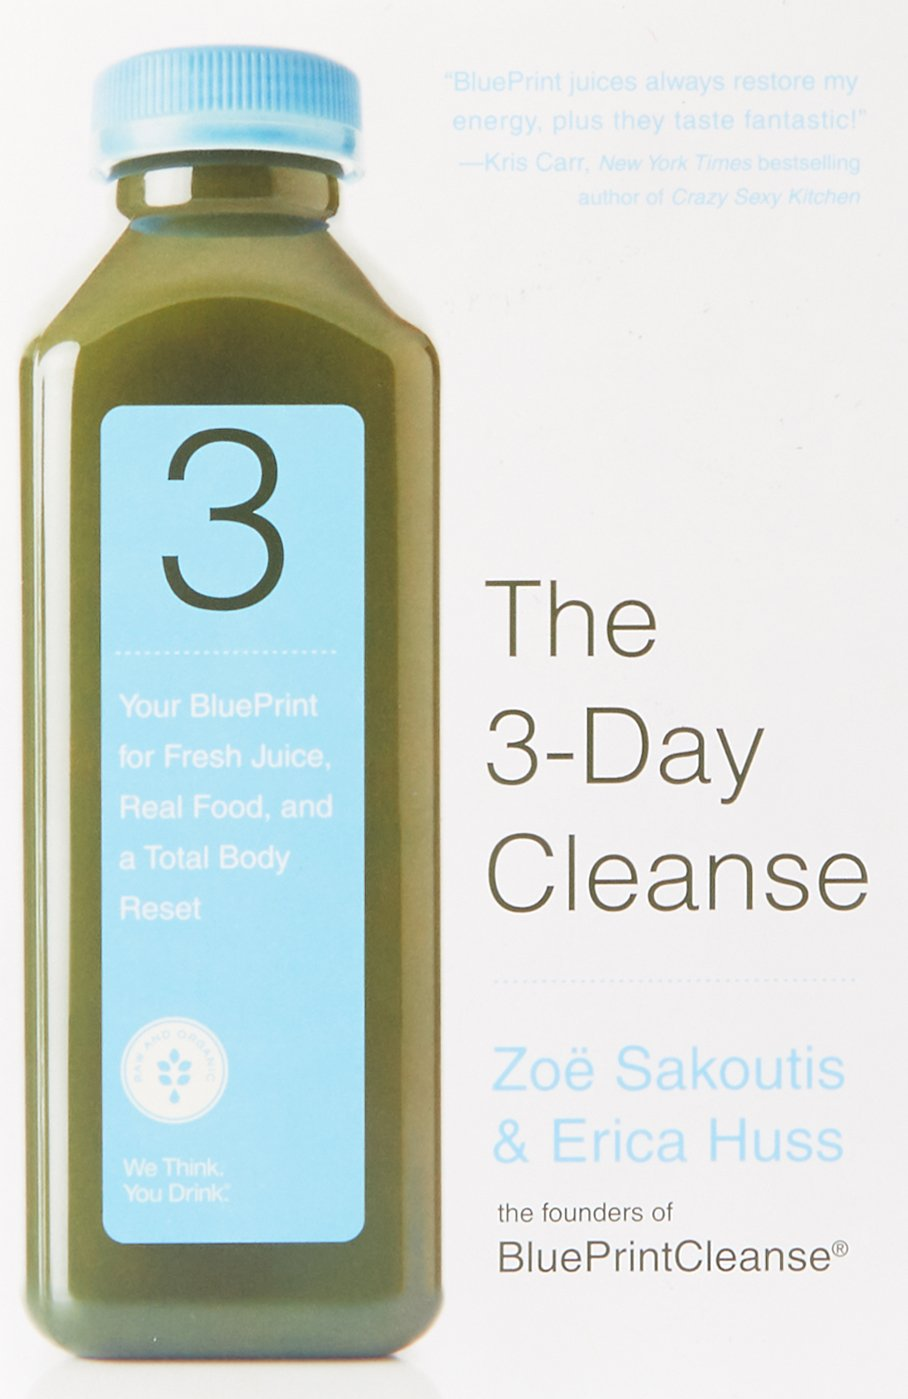 The 3 day cleanse drink fresh juice eat real food and get back the 3 day cleanse drink fresh juice eat real food and get back into your skinny jeans amazon zoe sakoutis erica huss 9780446545716 books malvernweather